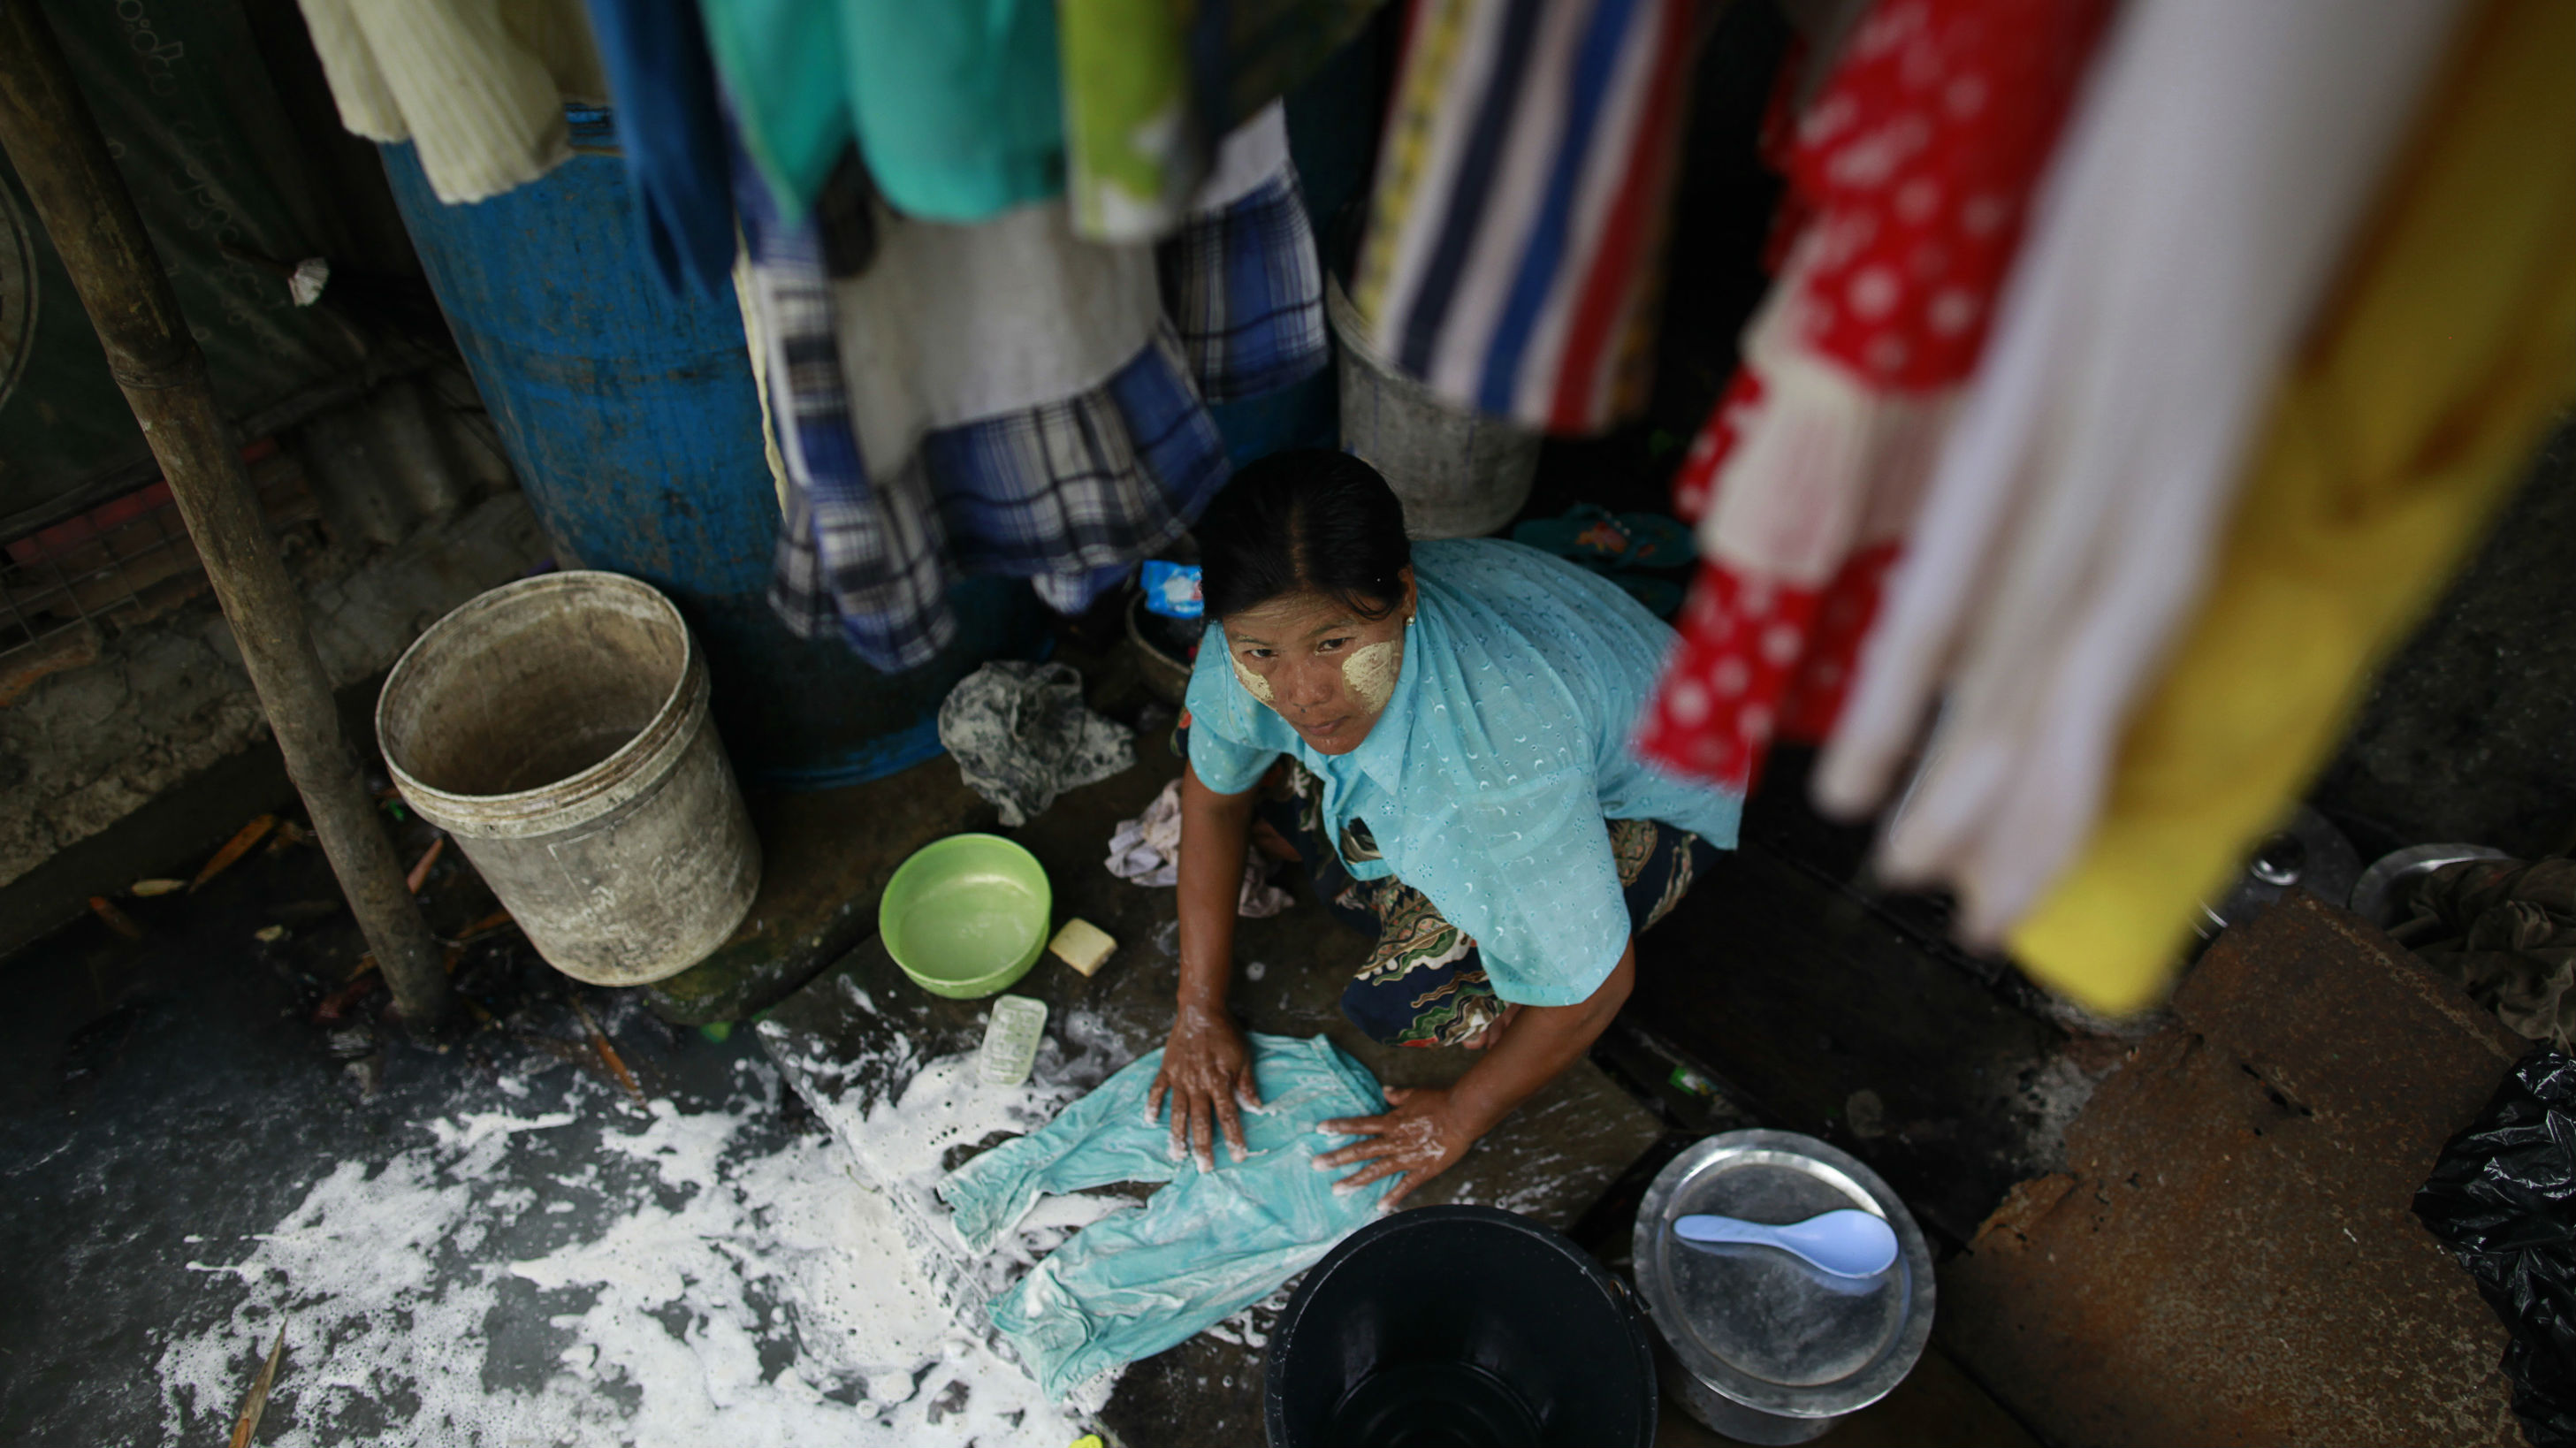 A woman washes clothes in her home at a slum area in Yangon June 25, 2013